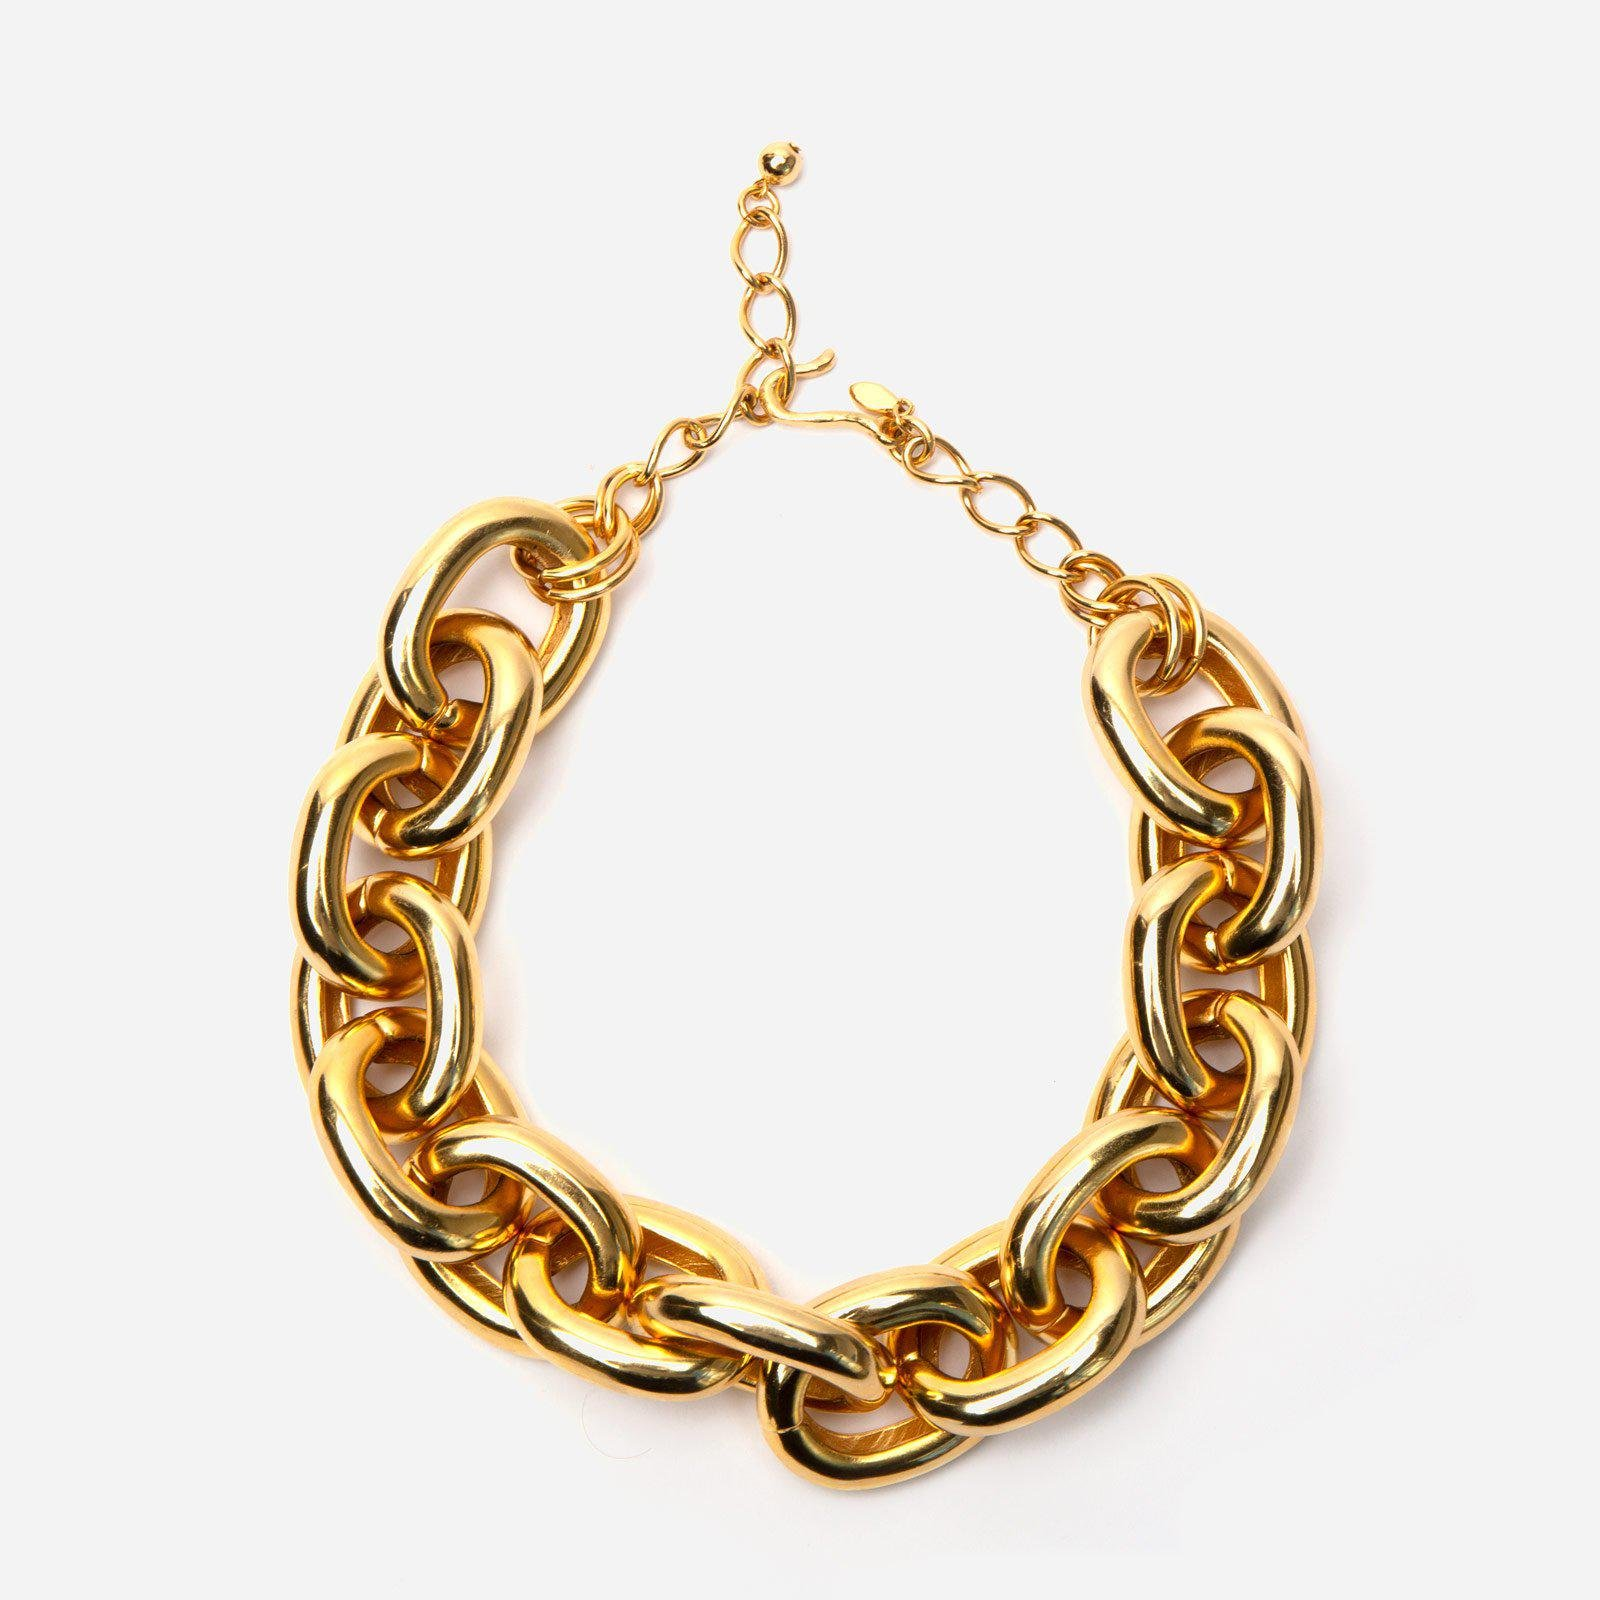 Grand Chain Link Necklace